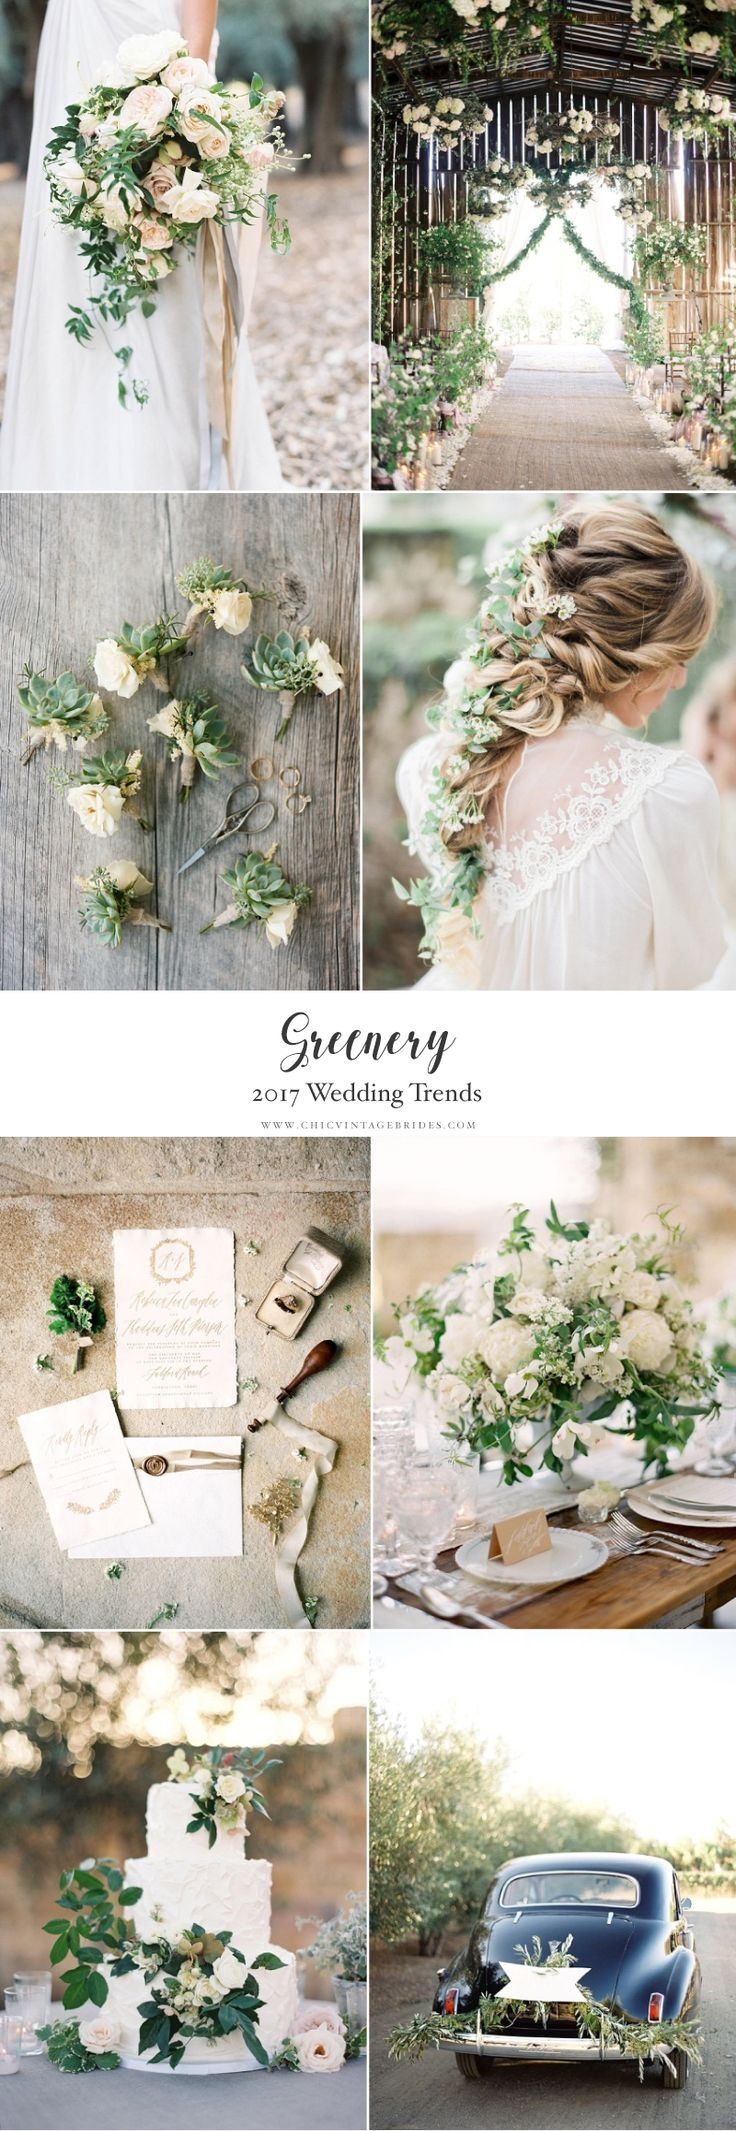 Top Wedding Trends 2017 - Greenery